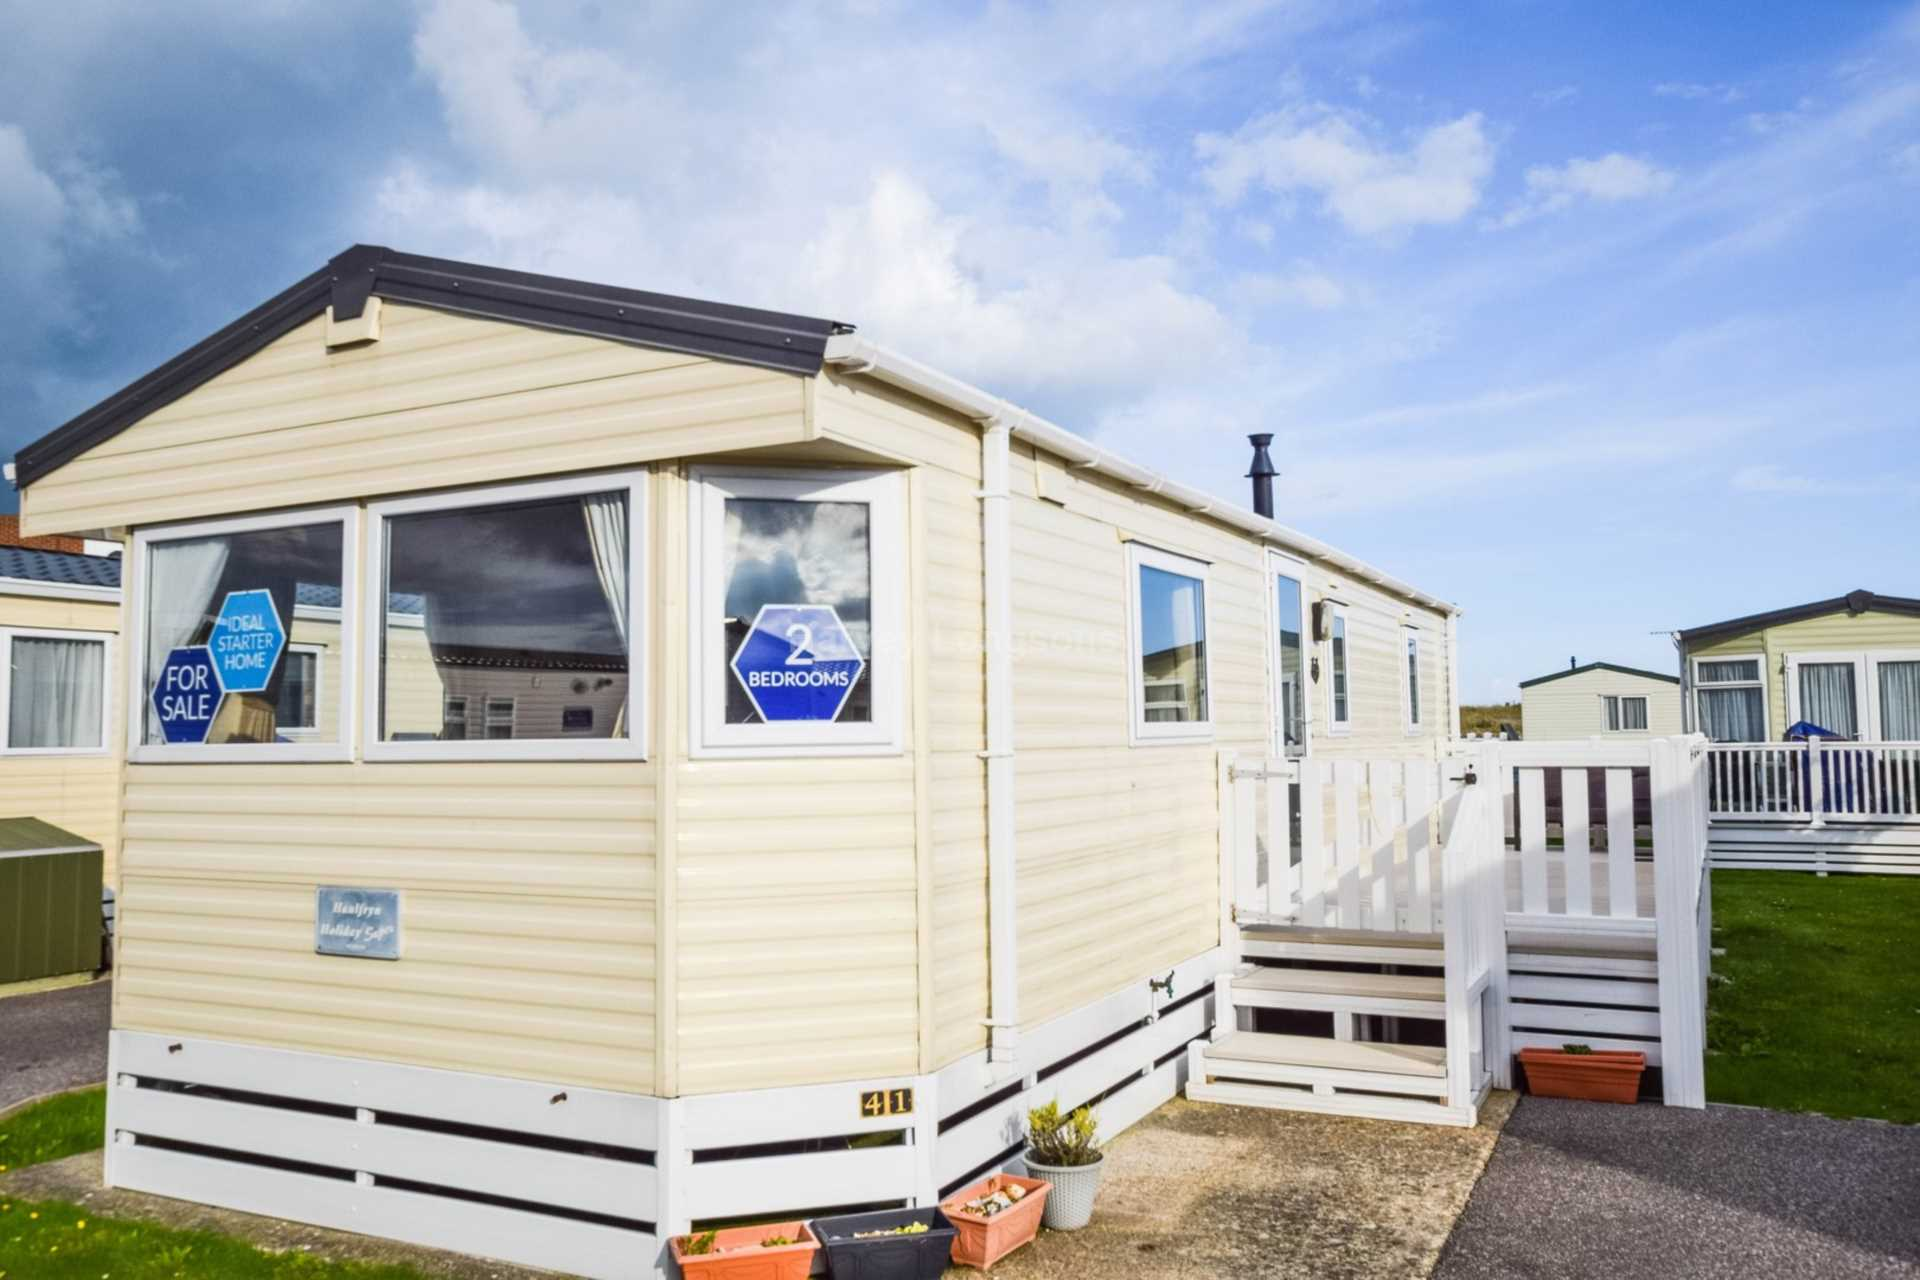 Pevensey Bay Holiday Park, Pevensey Bay